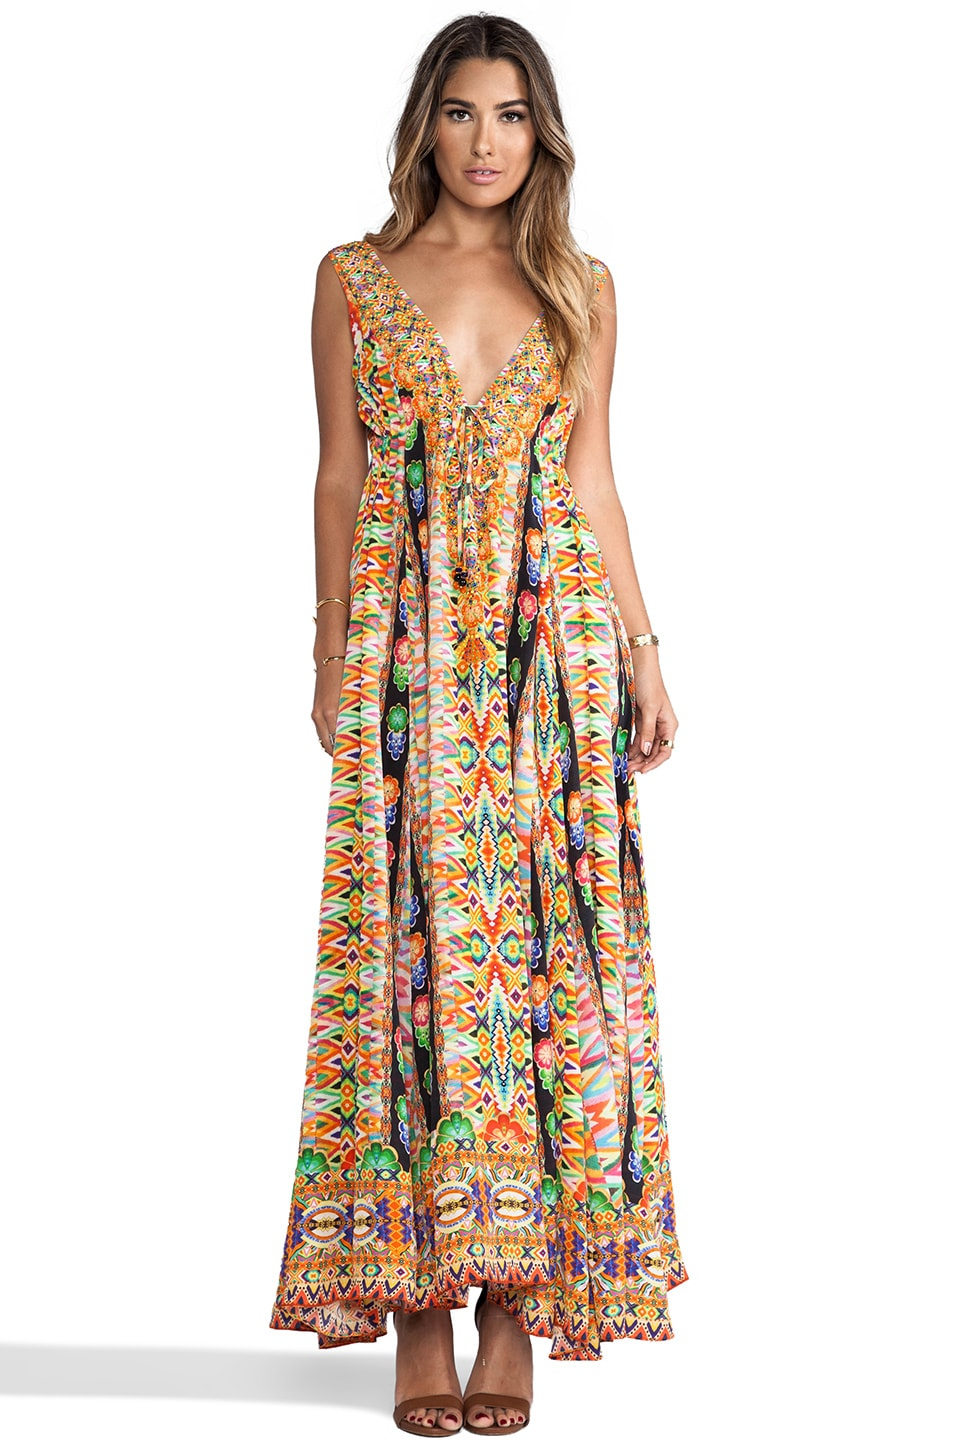 Camilla V-Neck Drawstring Dress in Multi